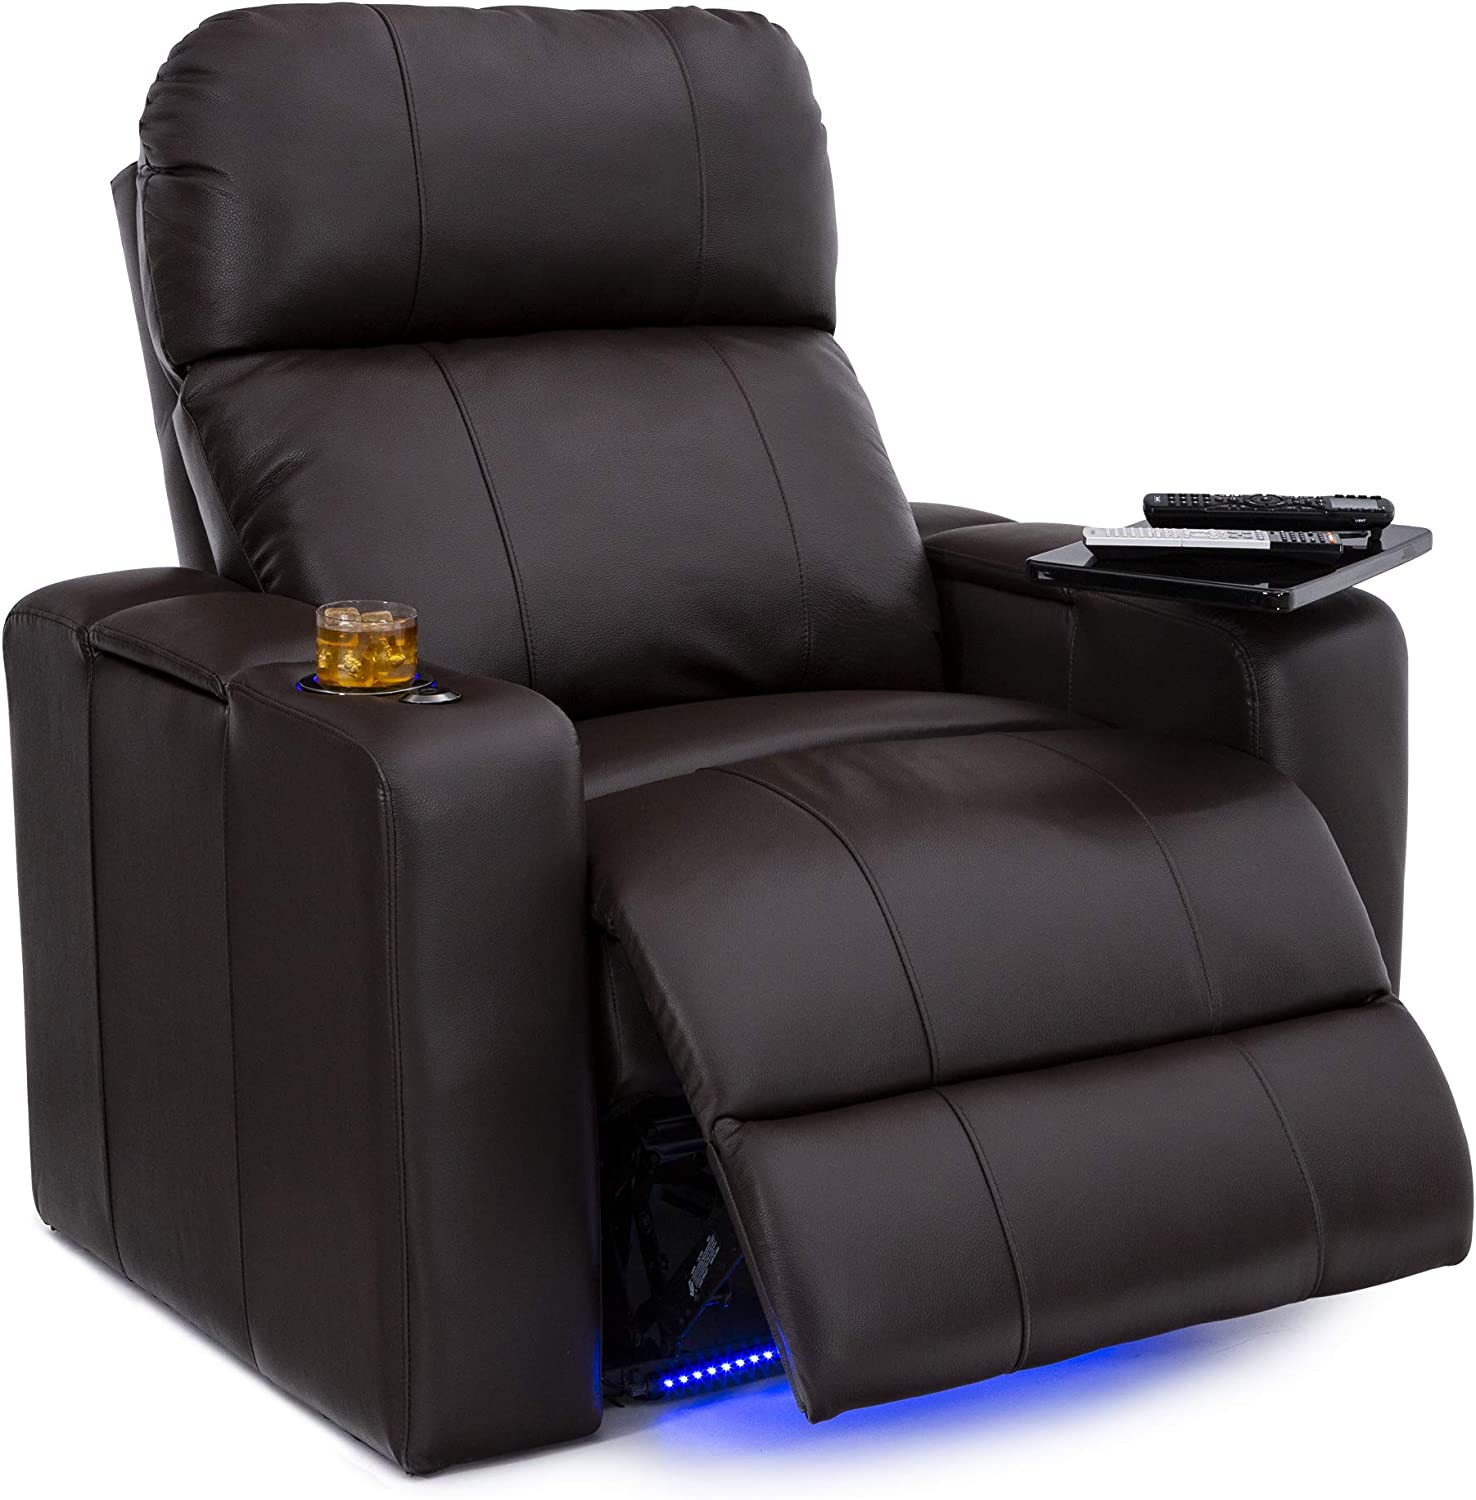 Seatcraft Julius Big & Tall 400 lbs Capacity-Home Theater Seating Leather Recliner-Adjustable Powered Headrest-SoundShaker-USB Charging-Lighted Cup Holders-Brown